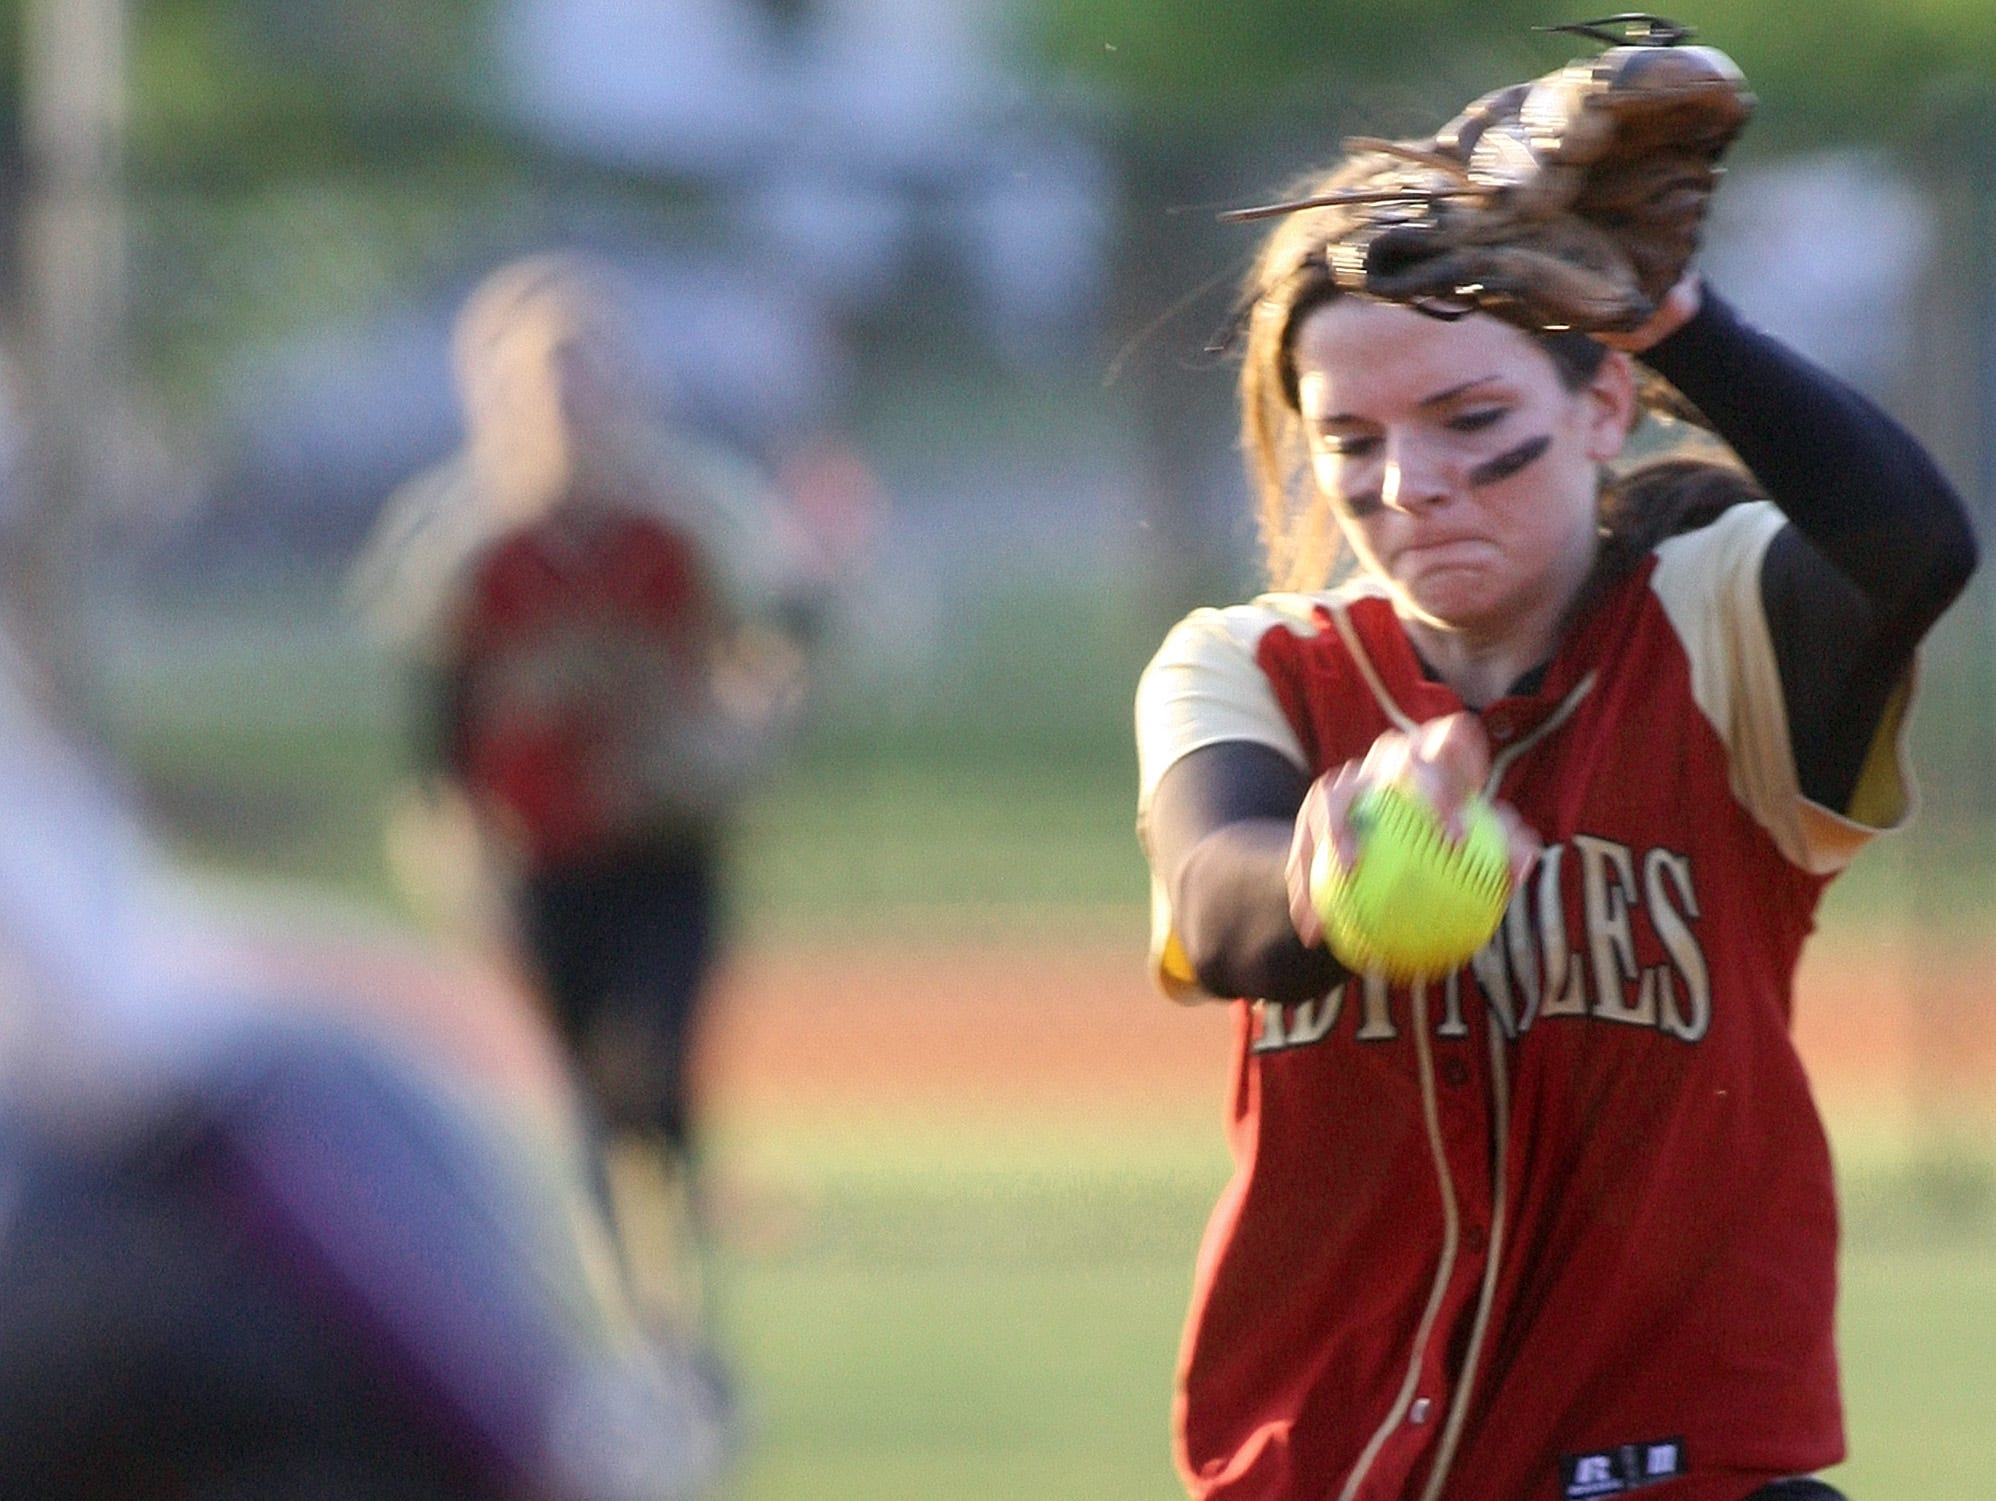 Florida High pitcher Taylor Rossman winds up before striking out a Marianna batter in the third inning of their Class 3A regional quarterfinal softball game on April 27, 2010. Rossman had 14 strikeouts as the Seminoles won 1-0.